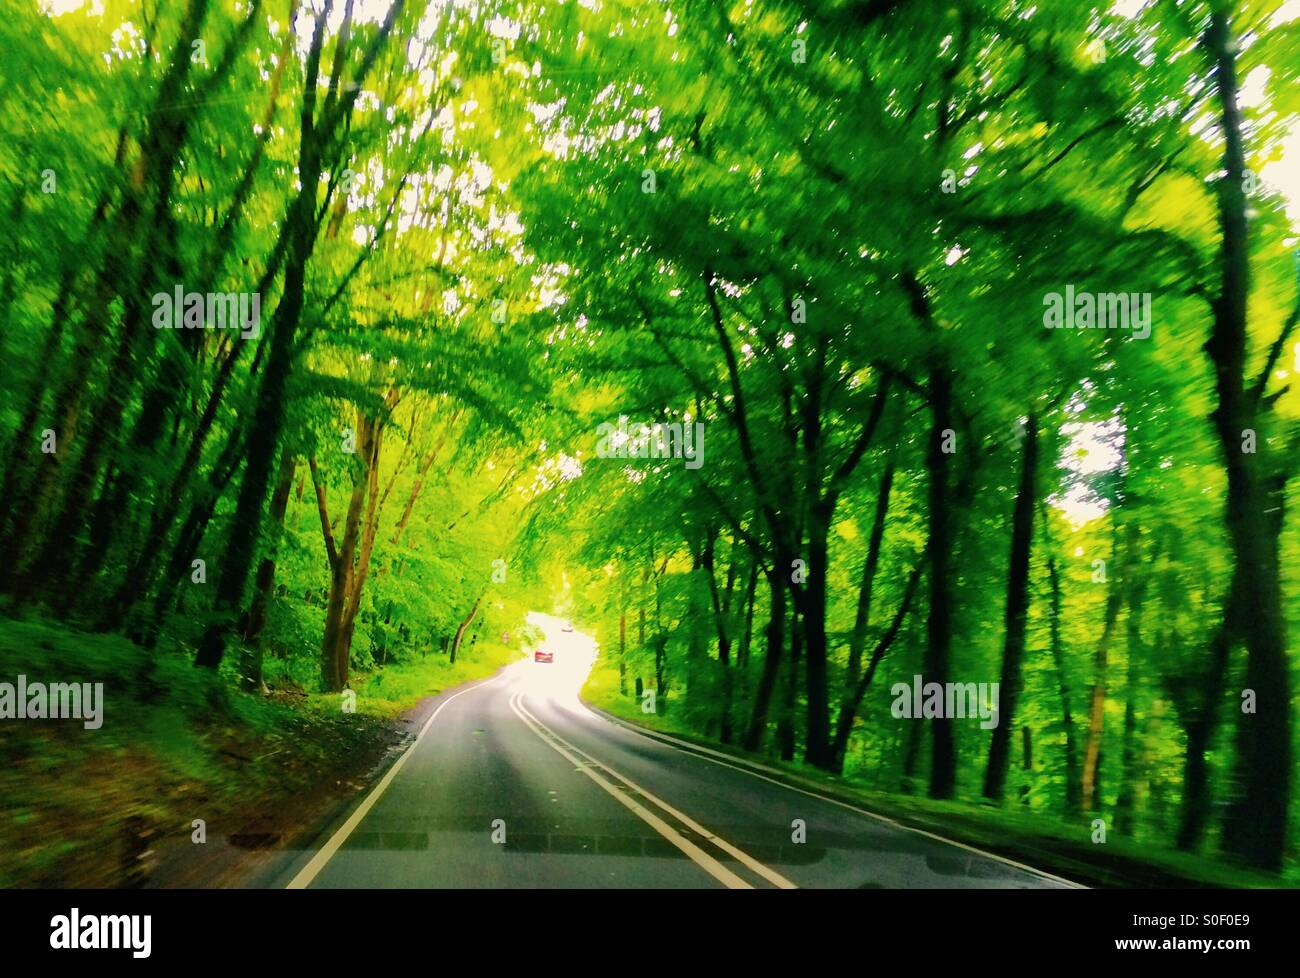 Tree tunnel. - Stock Image